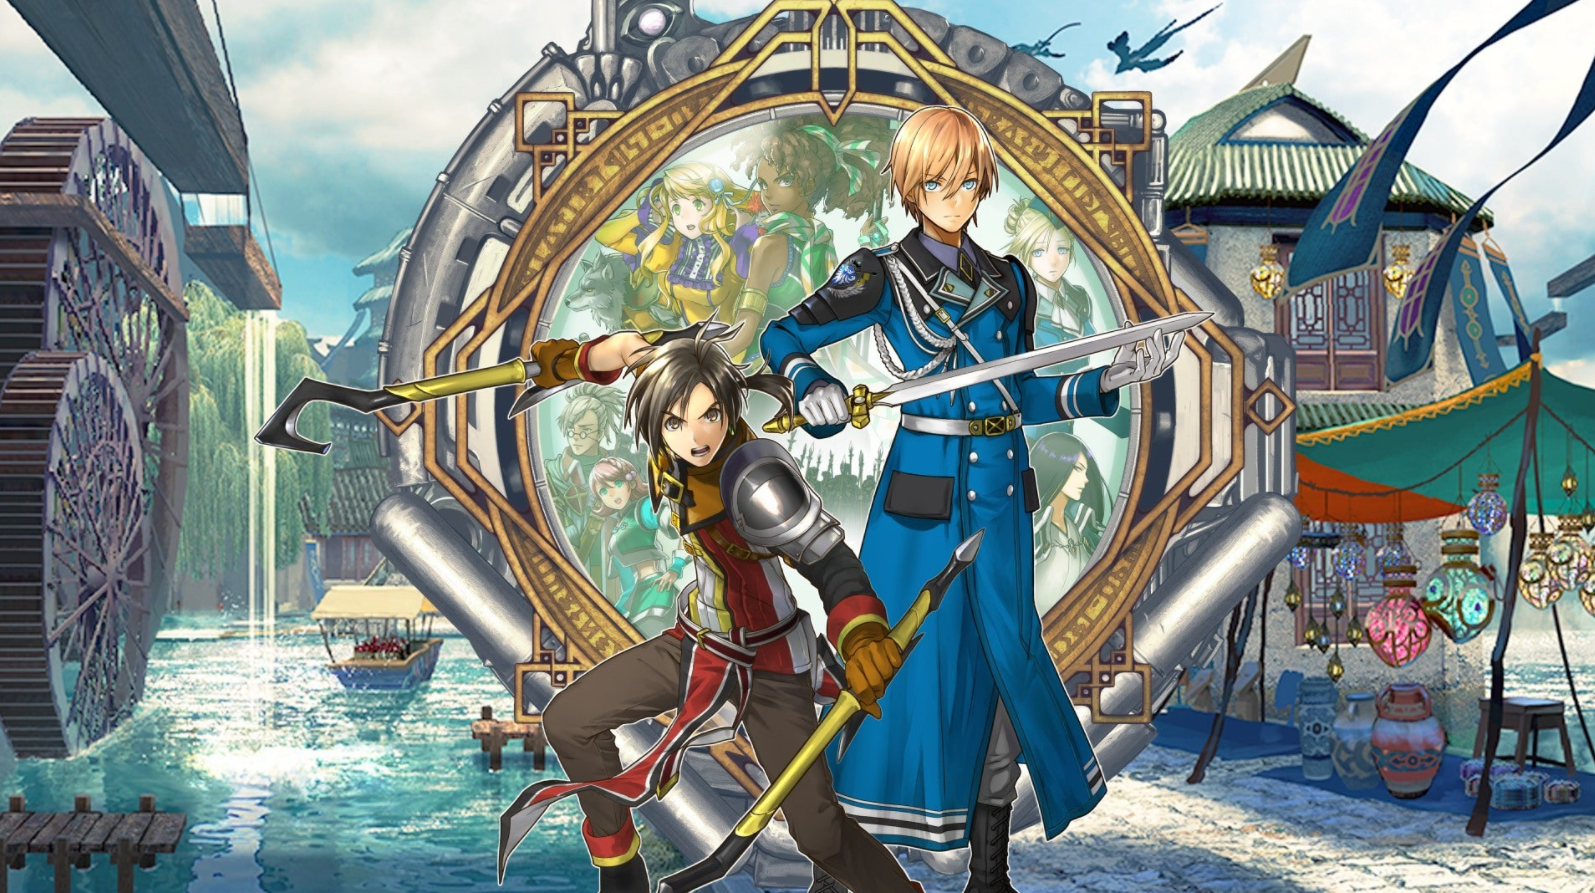 eiyuden-chronicle-hundred-heroes-for-ps5-from-the-creators-of-suikoden-creators-gets-picked-up-by-publisher-505-games